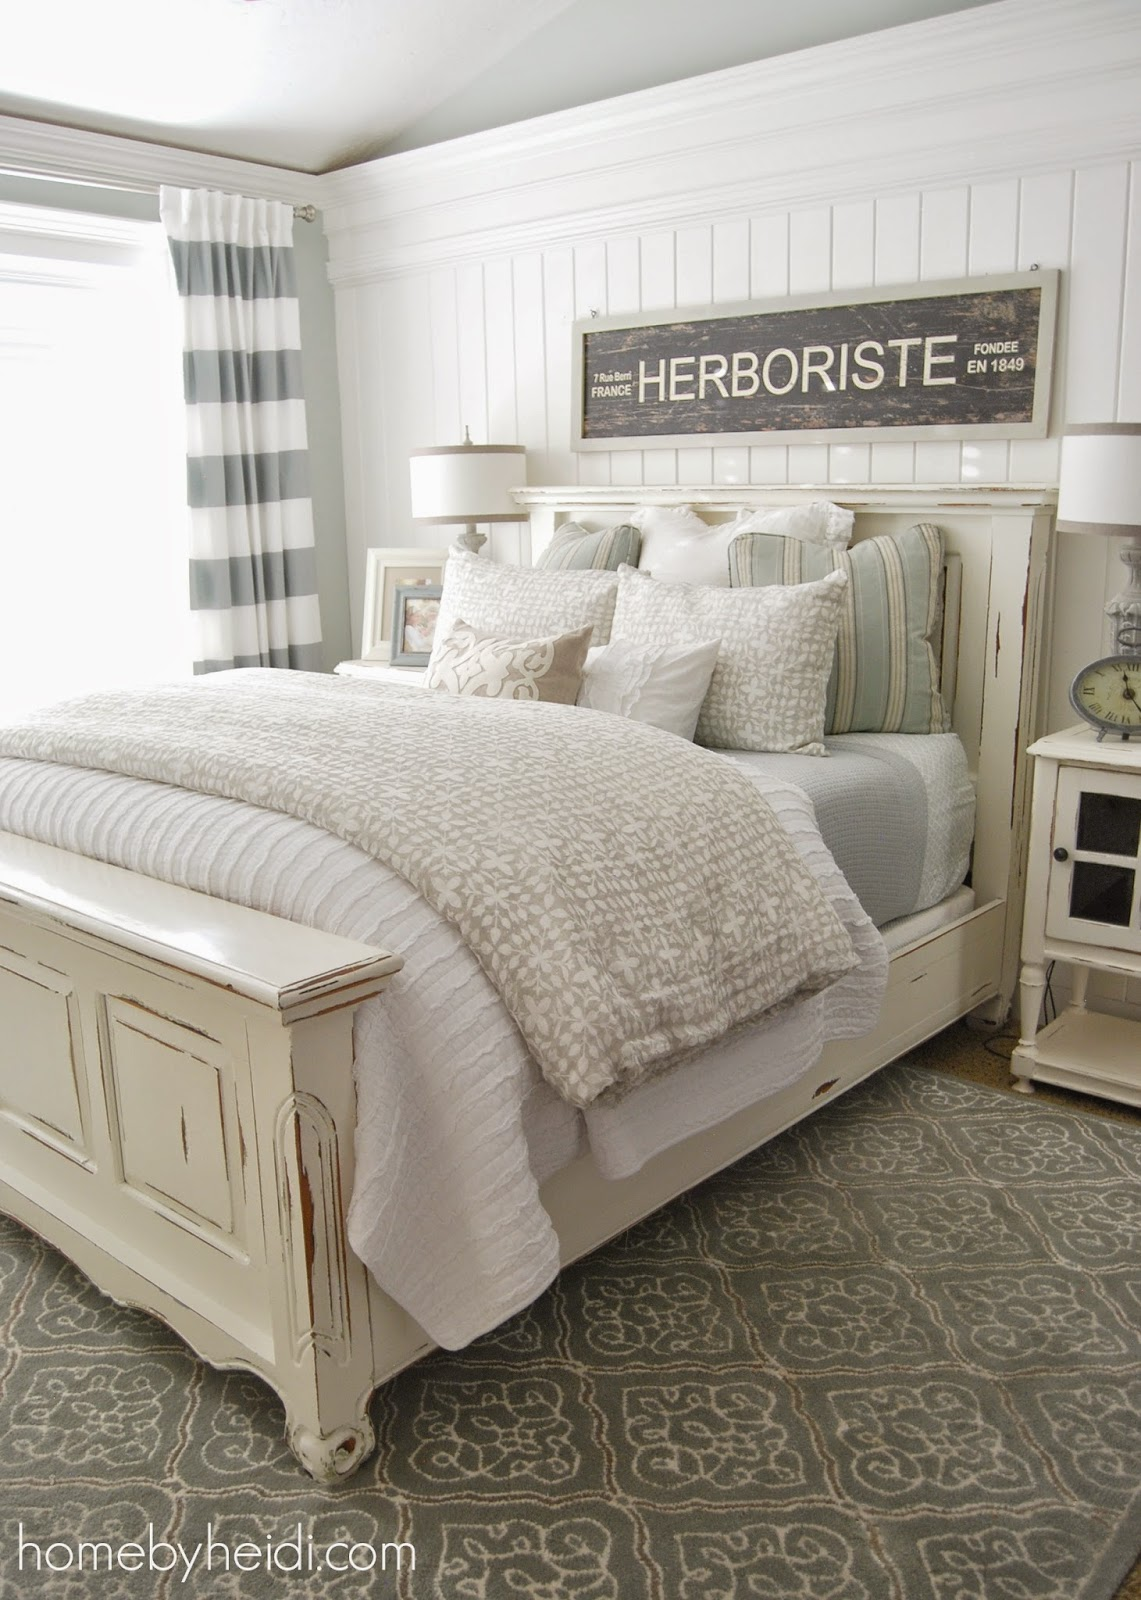 Simple It is definitely lighter and more airy pared to my last designed Master Bedroom